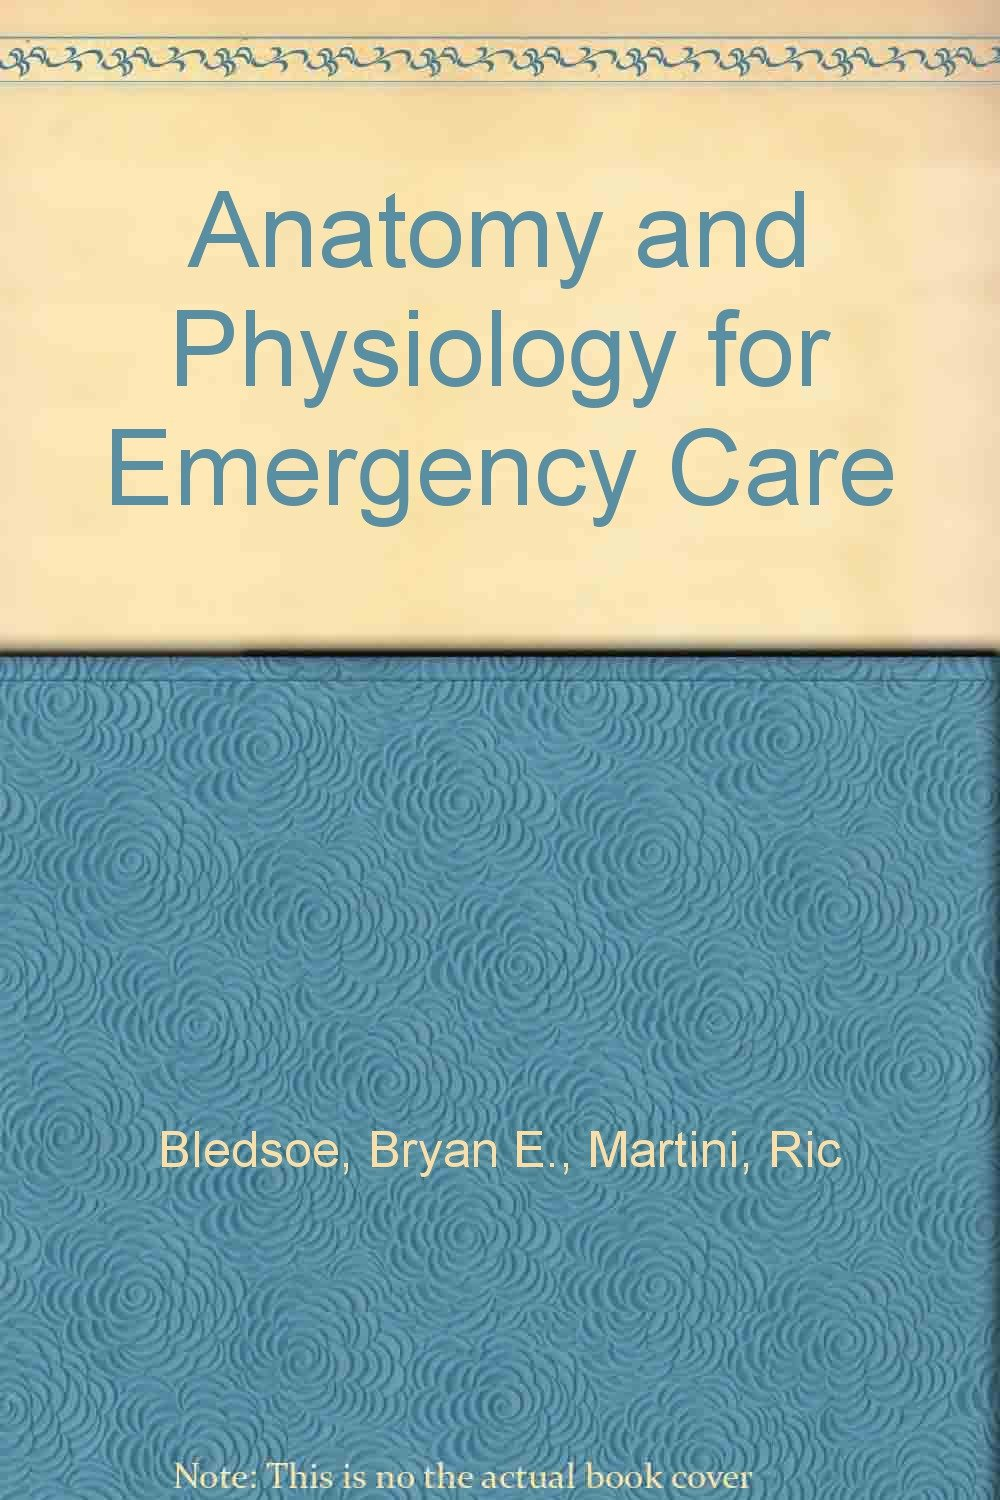 Anatomy and Physiology for Emergency Care: Bryan E., Martini, Ric ...